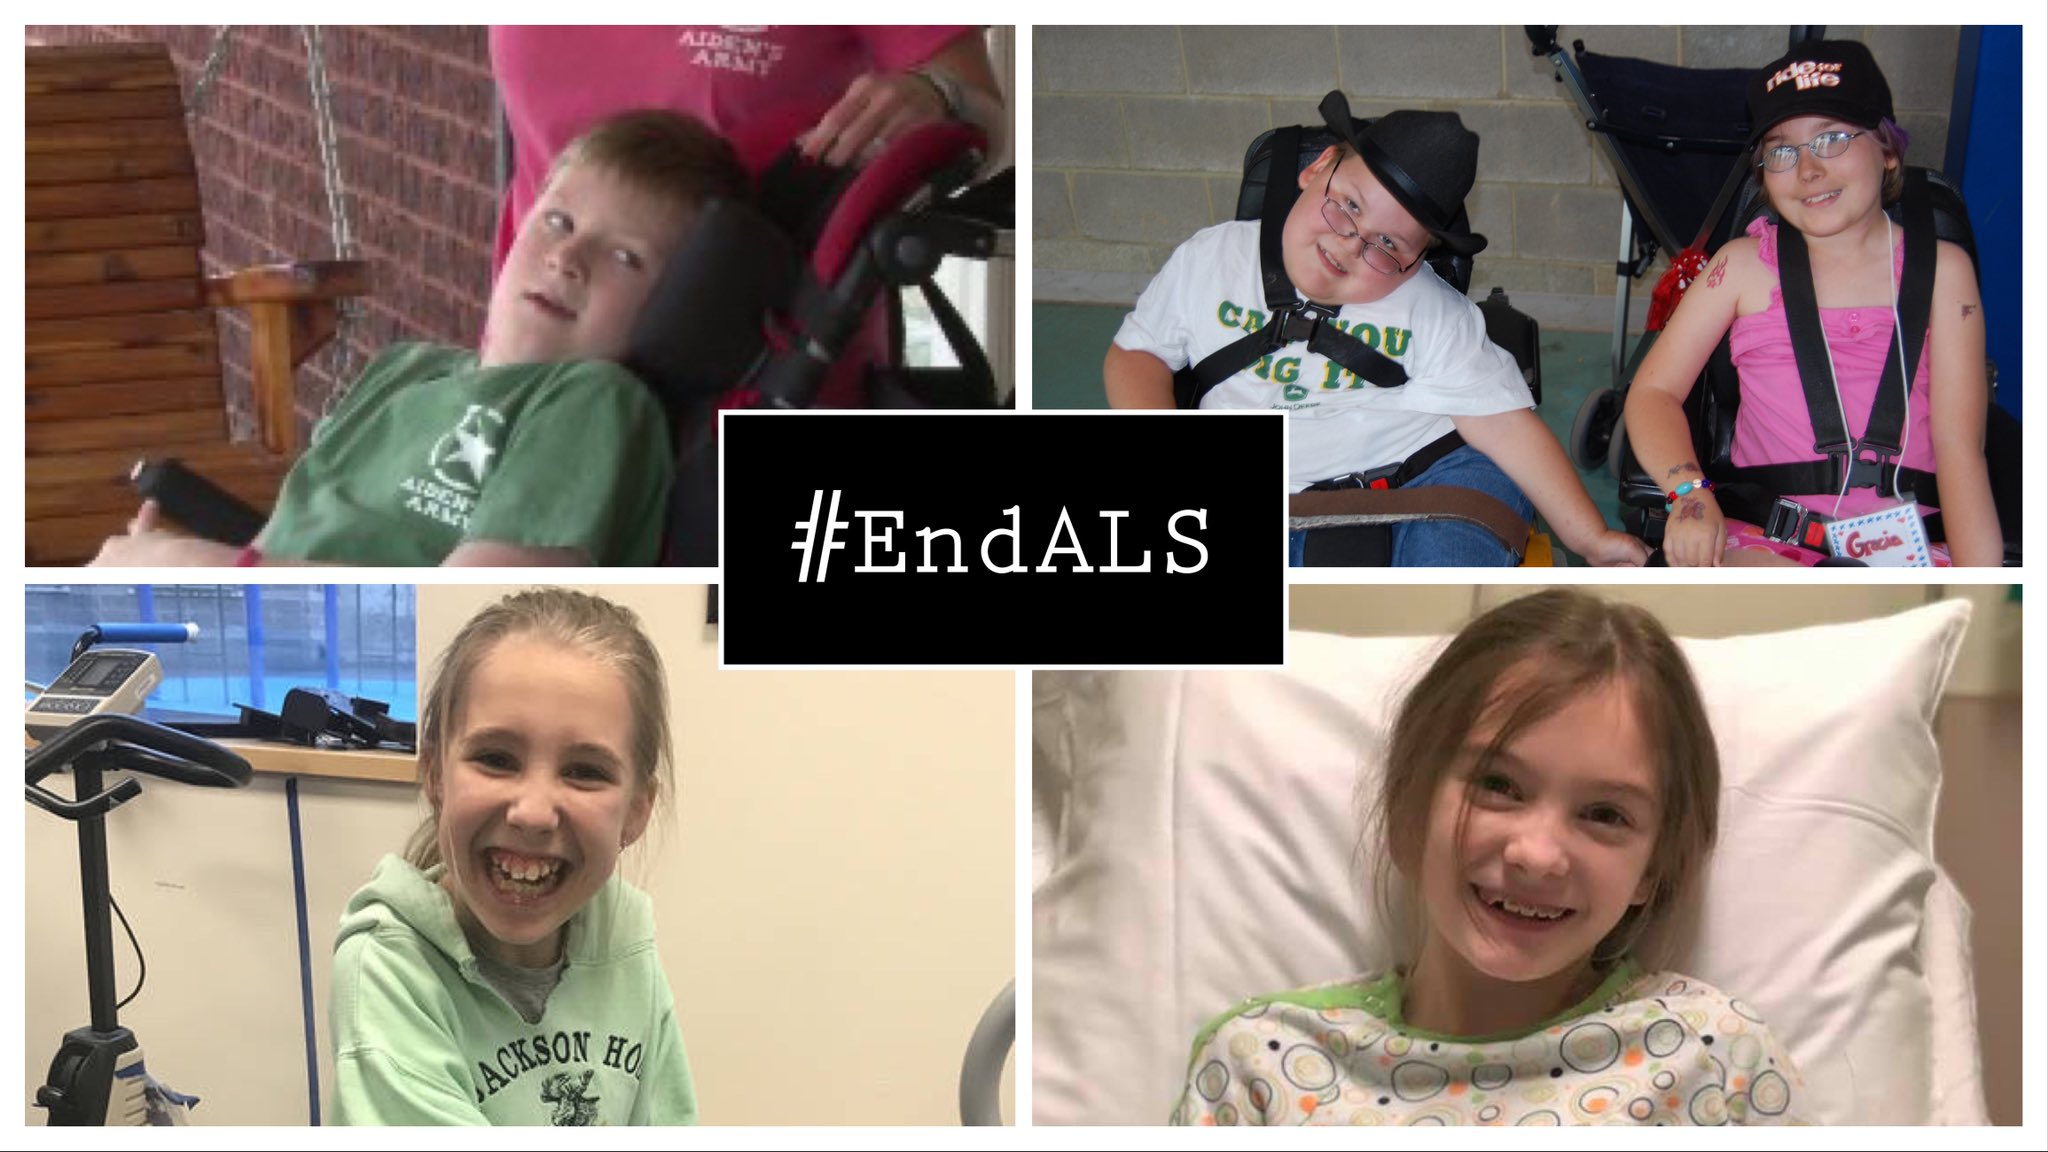 ALS (amyotrophic lateral sclerosis) - A chronic and progressive motor neuron disease characterized by the degeneration of nerve cells that control voluntary movement.